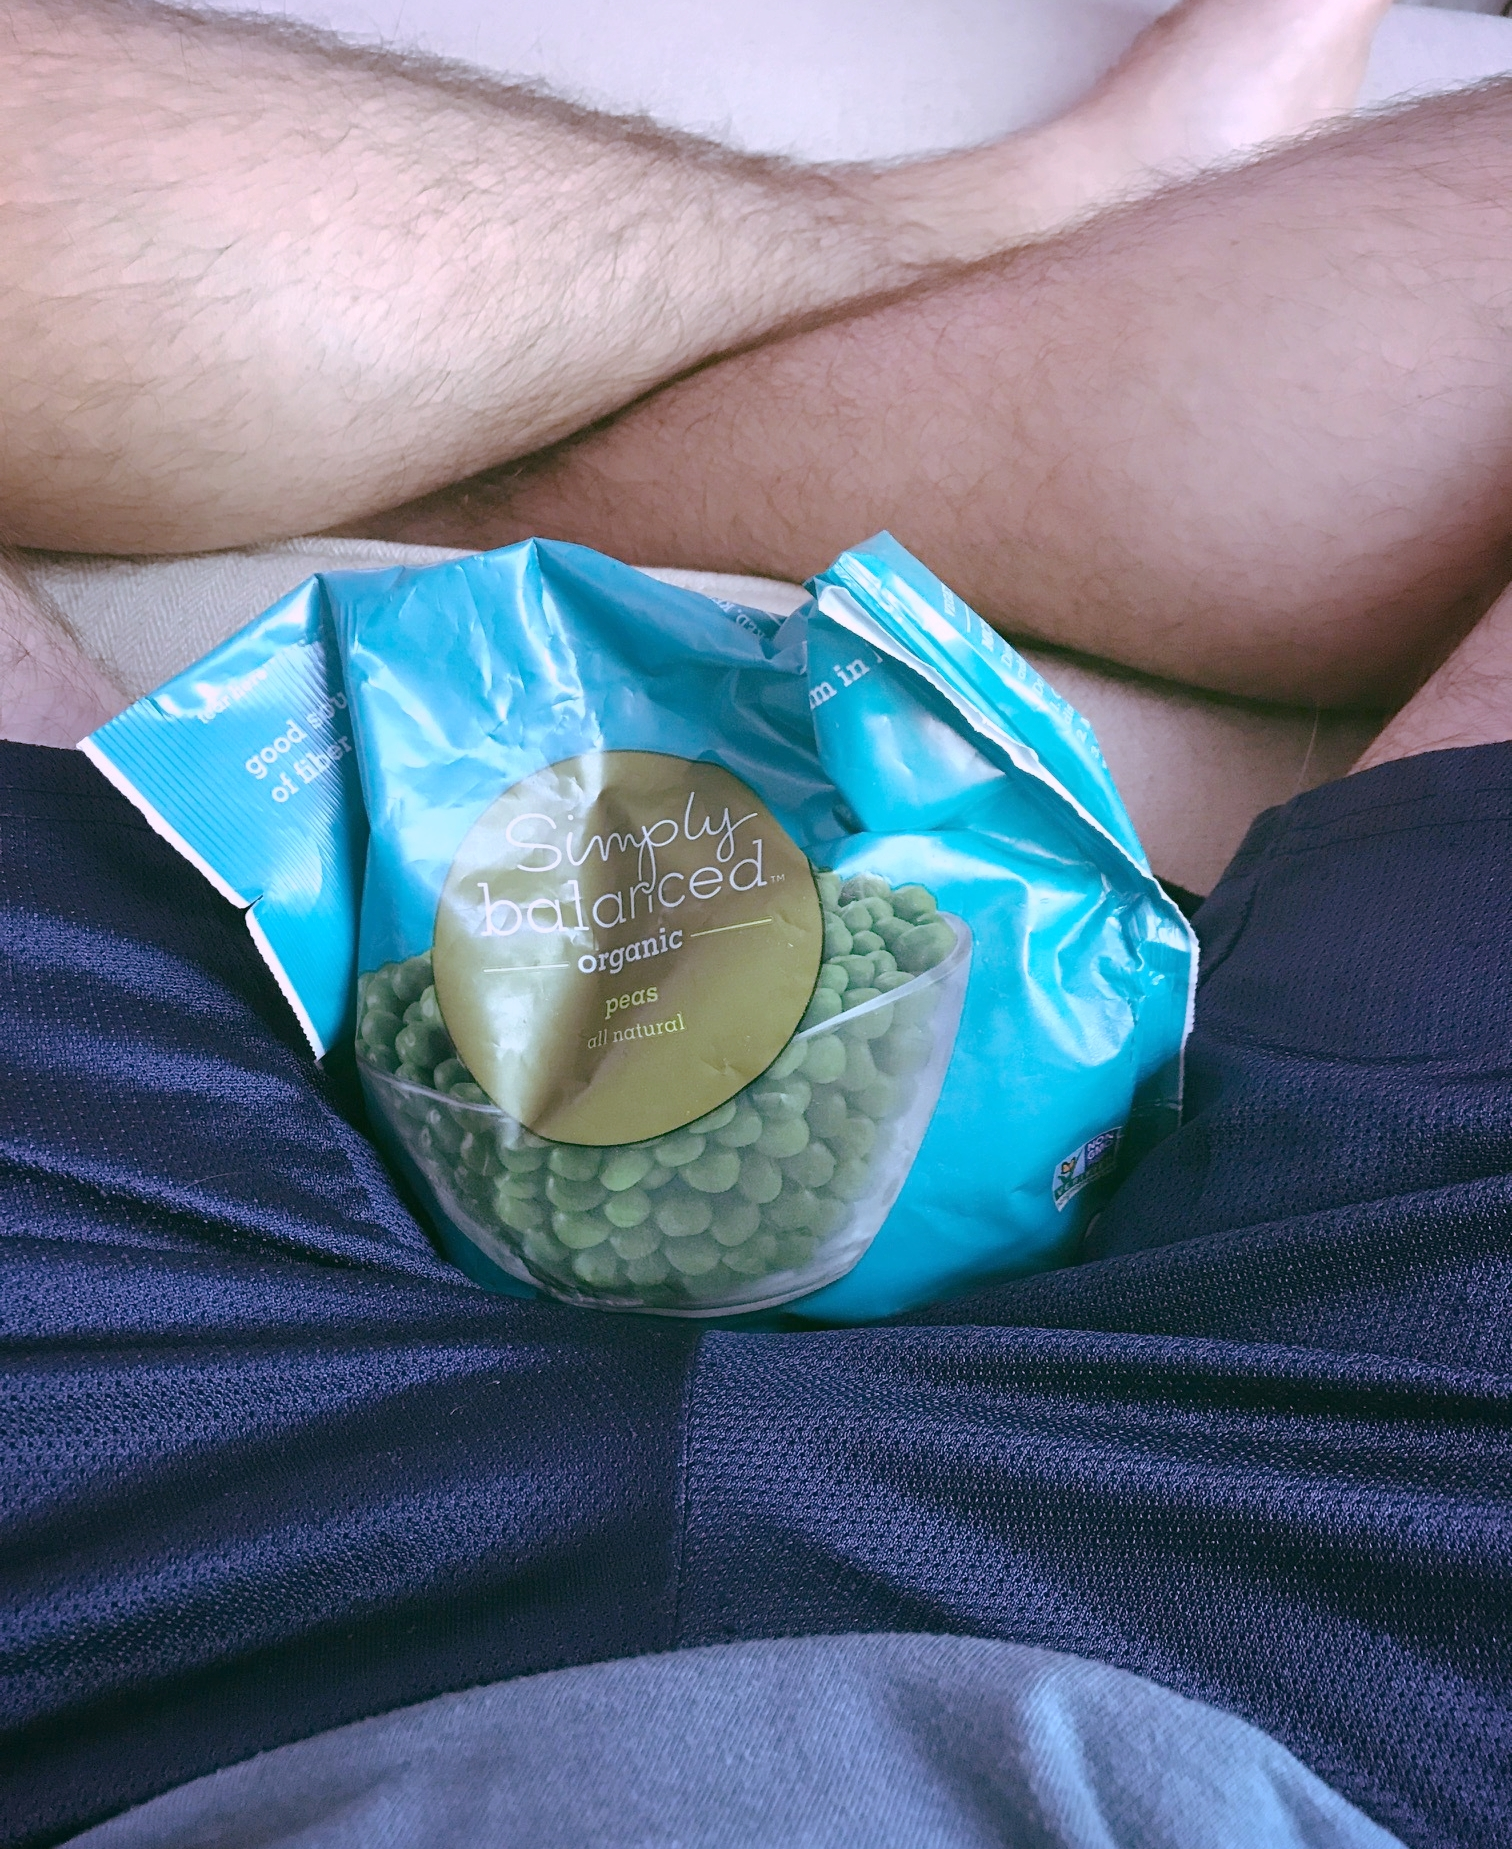 Someone needs to come up with an ice pack that feels as good as frozen peas.